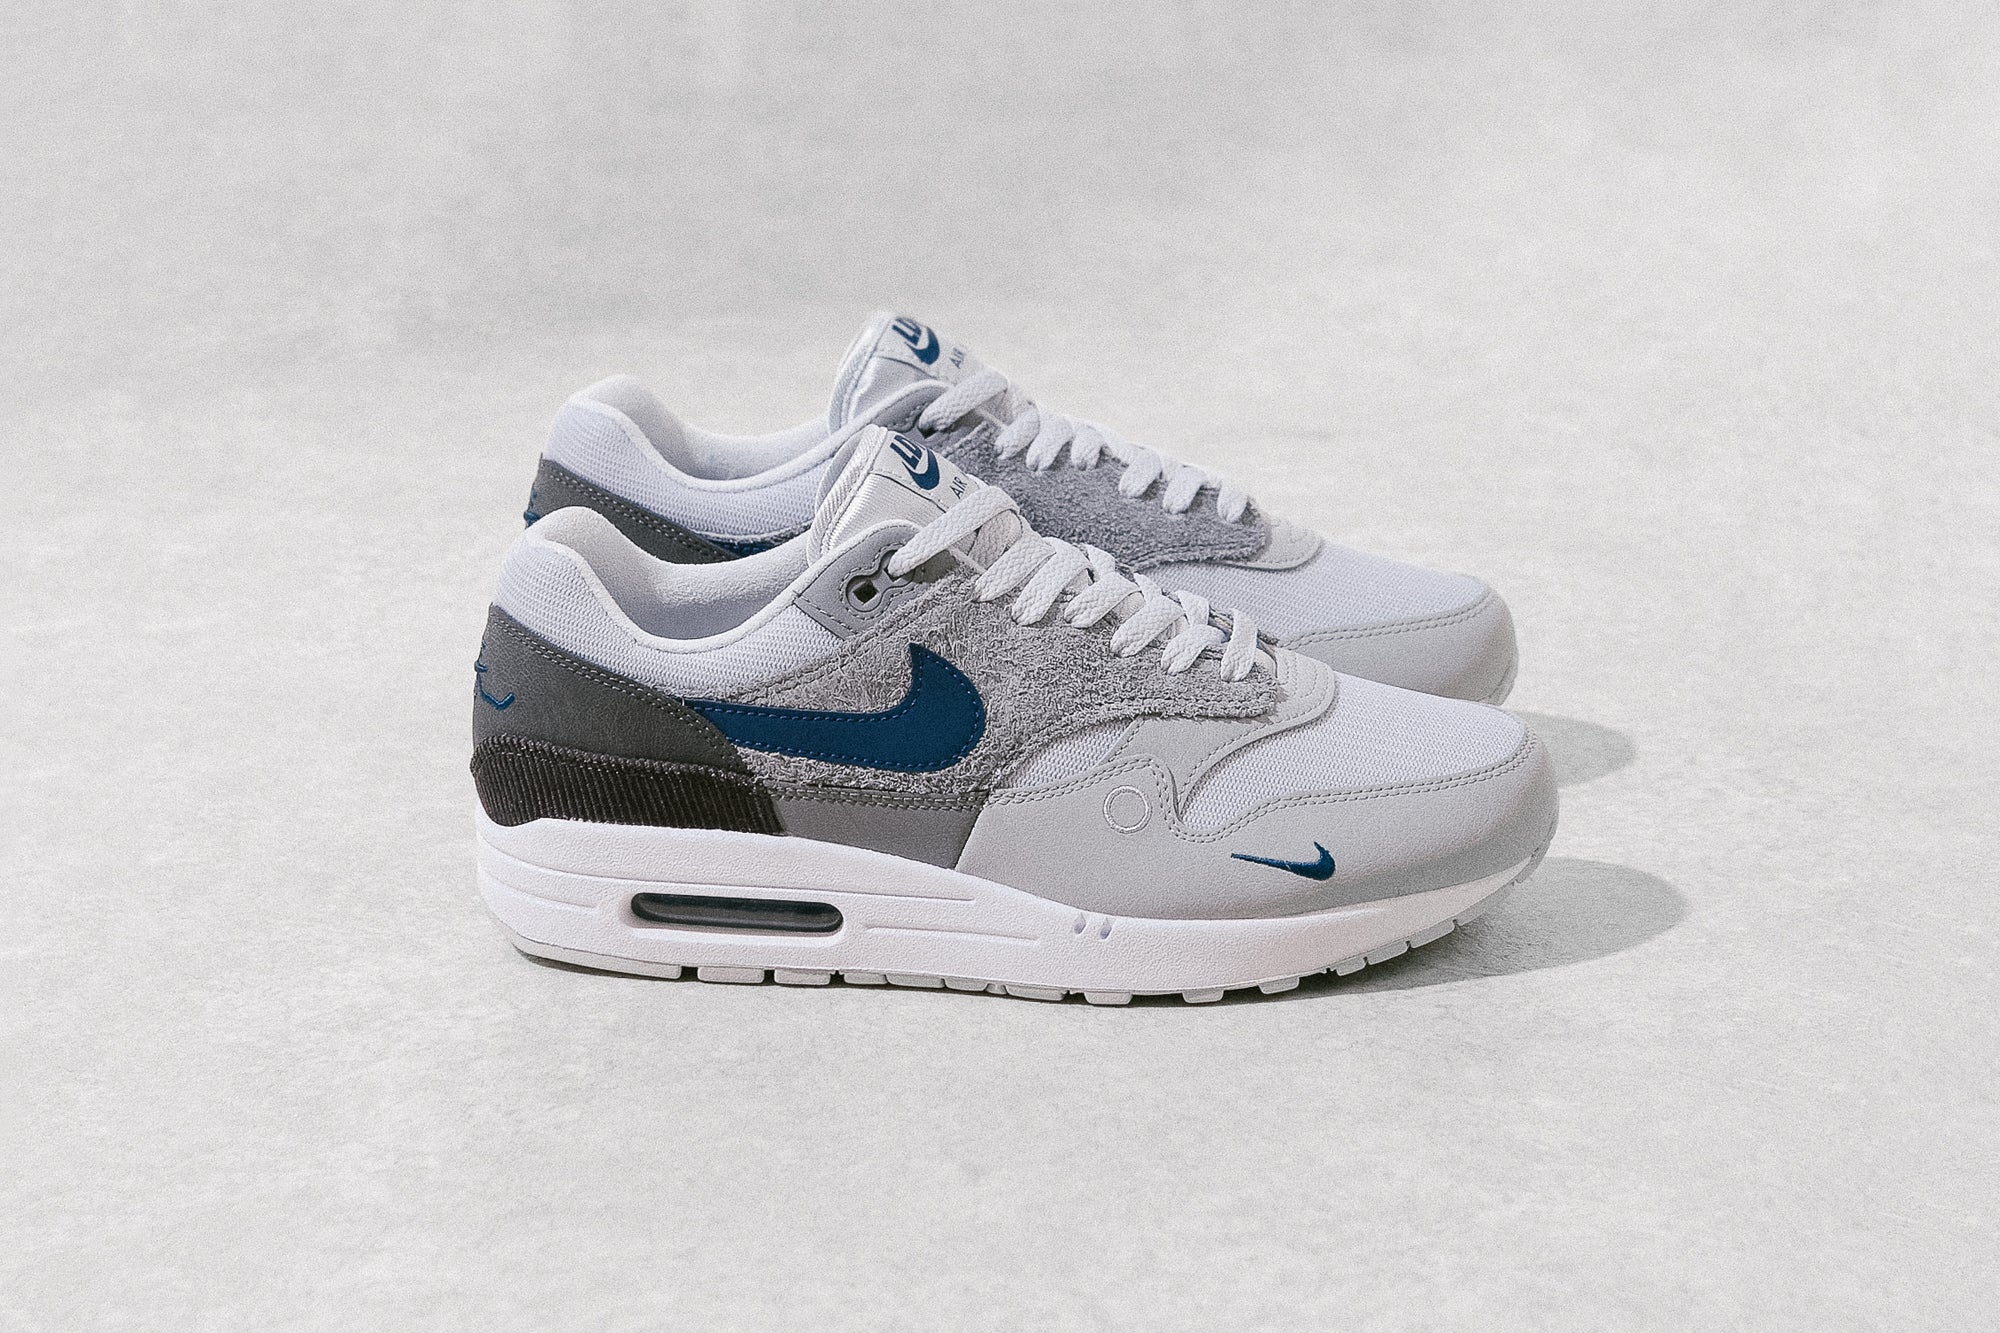 Nike Air Max 1 'City Pack': London Edition | Always in Colour